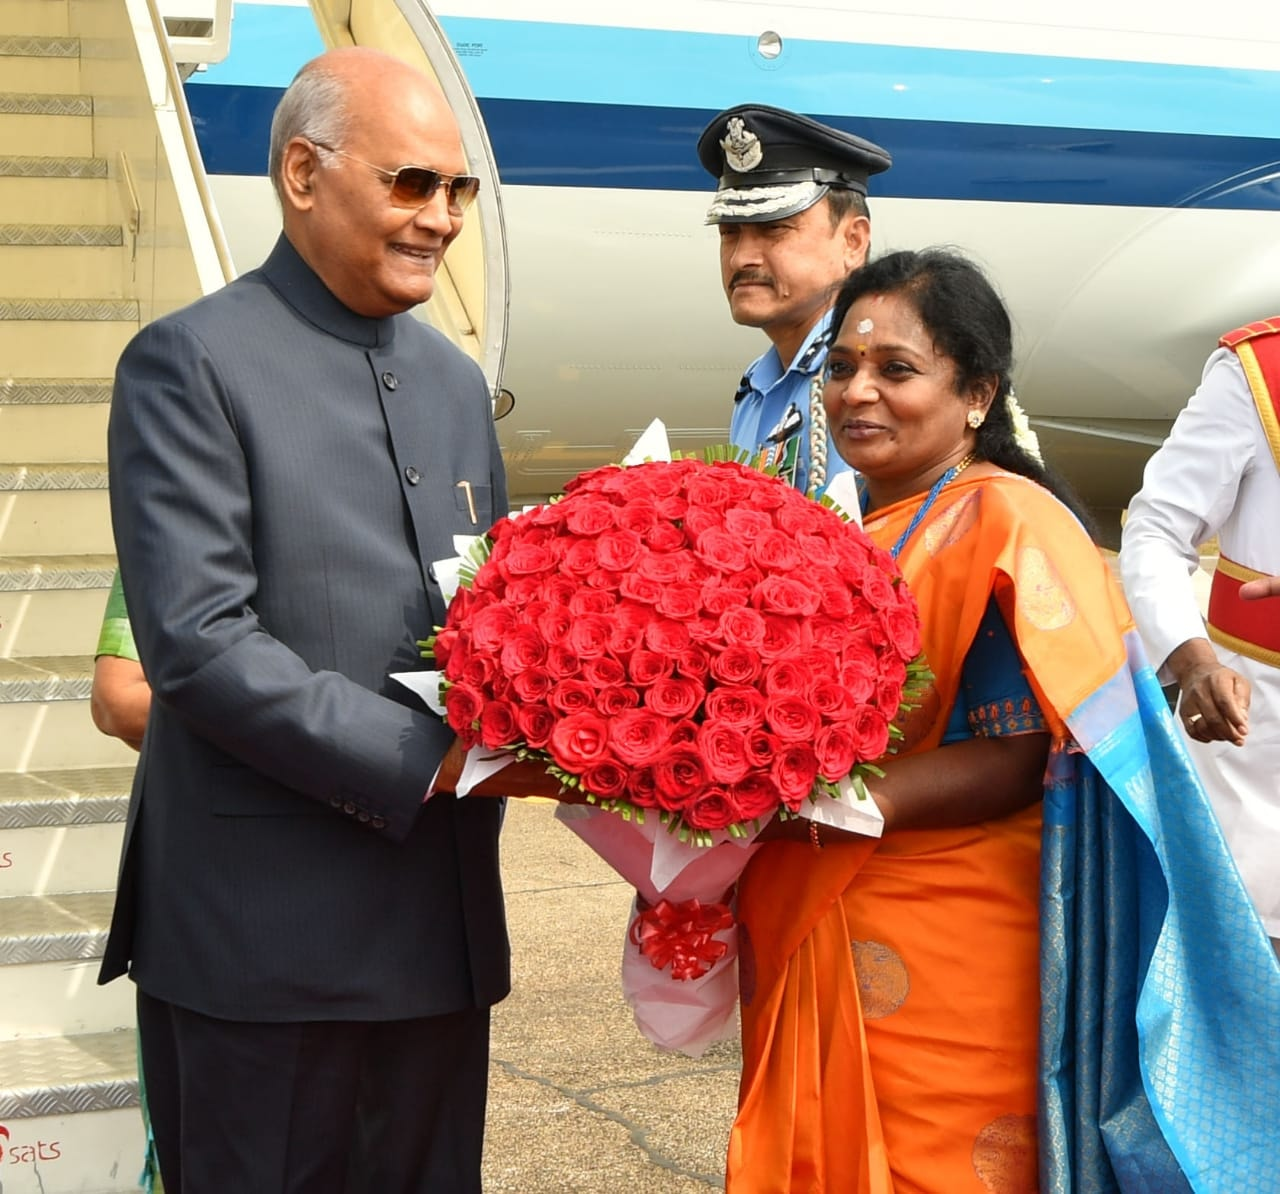 Tamilisai Soundararajan | Governor | Physician | Student Leader | BJP | South Chennai District Medical Wing Secretary | State General Secretary Medical Wing | All India Co-Convenor | State General Secretary | State Vice-President | National Secretary | Tamil Nadu State Unit President of the BJP | Thoothukkudi | Tamilnadu | theLeadersPage